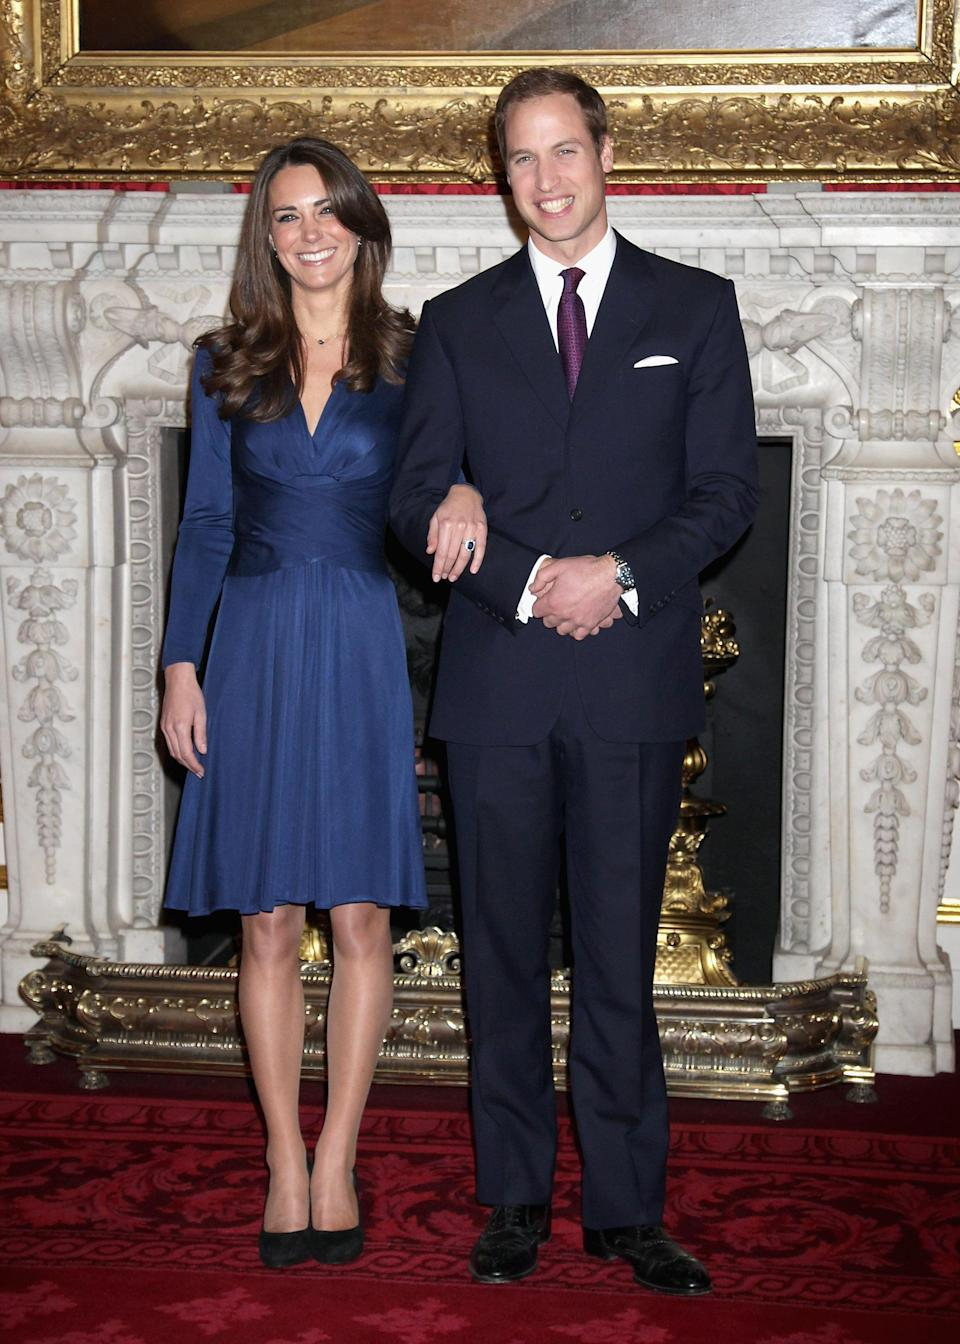 """<p>The Duchess of Cambridge and Prince William announced their royal engagement on 16 November 2010.<br><br>The couple posed for their official photographs at St James' Palace with legendary fashion photographer Mario Testino behind the lens.<br><br>Prince William proposed to Kate Middleton on 20 October 2010 while on holiday in Kenya with his mother Princess Diana's sapphire ring.<br><br>The Queen was reportedly """"absolutely delighted"""" to hear the news. <em>[Photo: Getty]</em> </p>"""